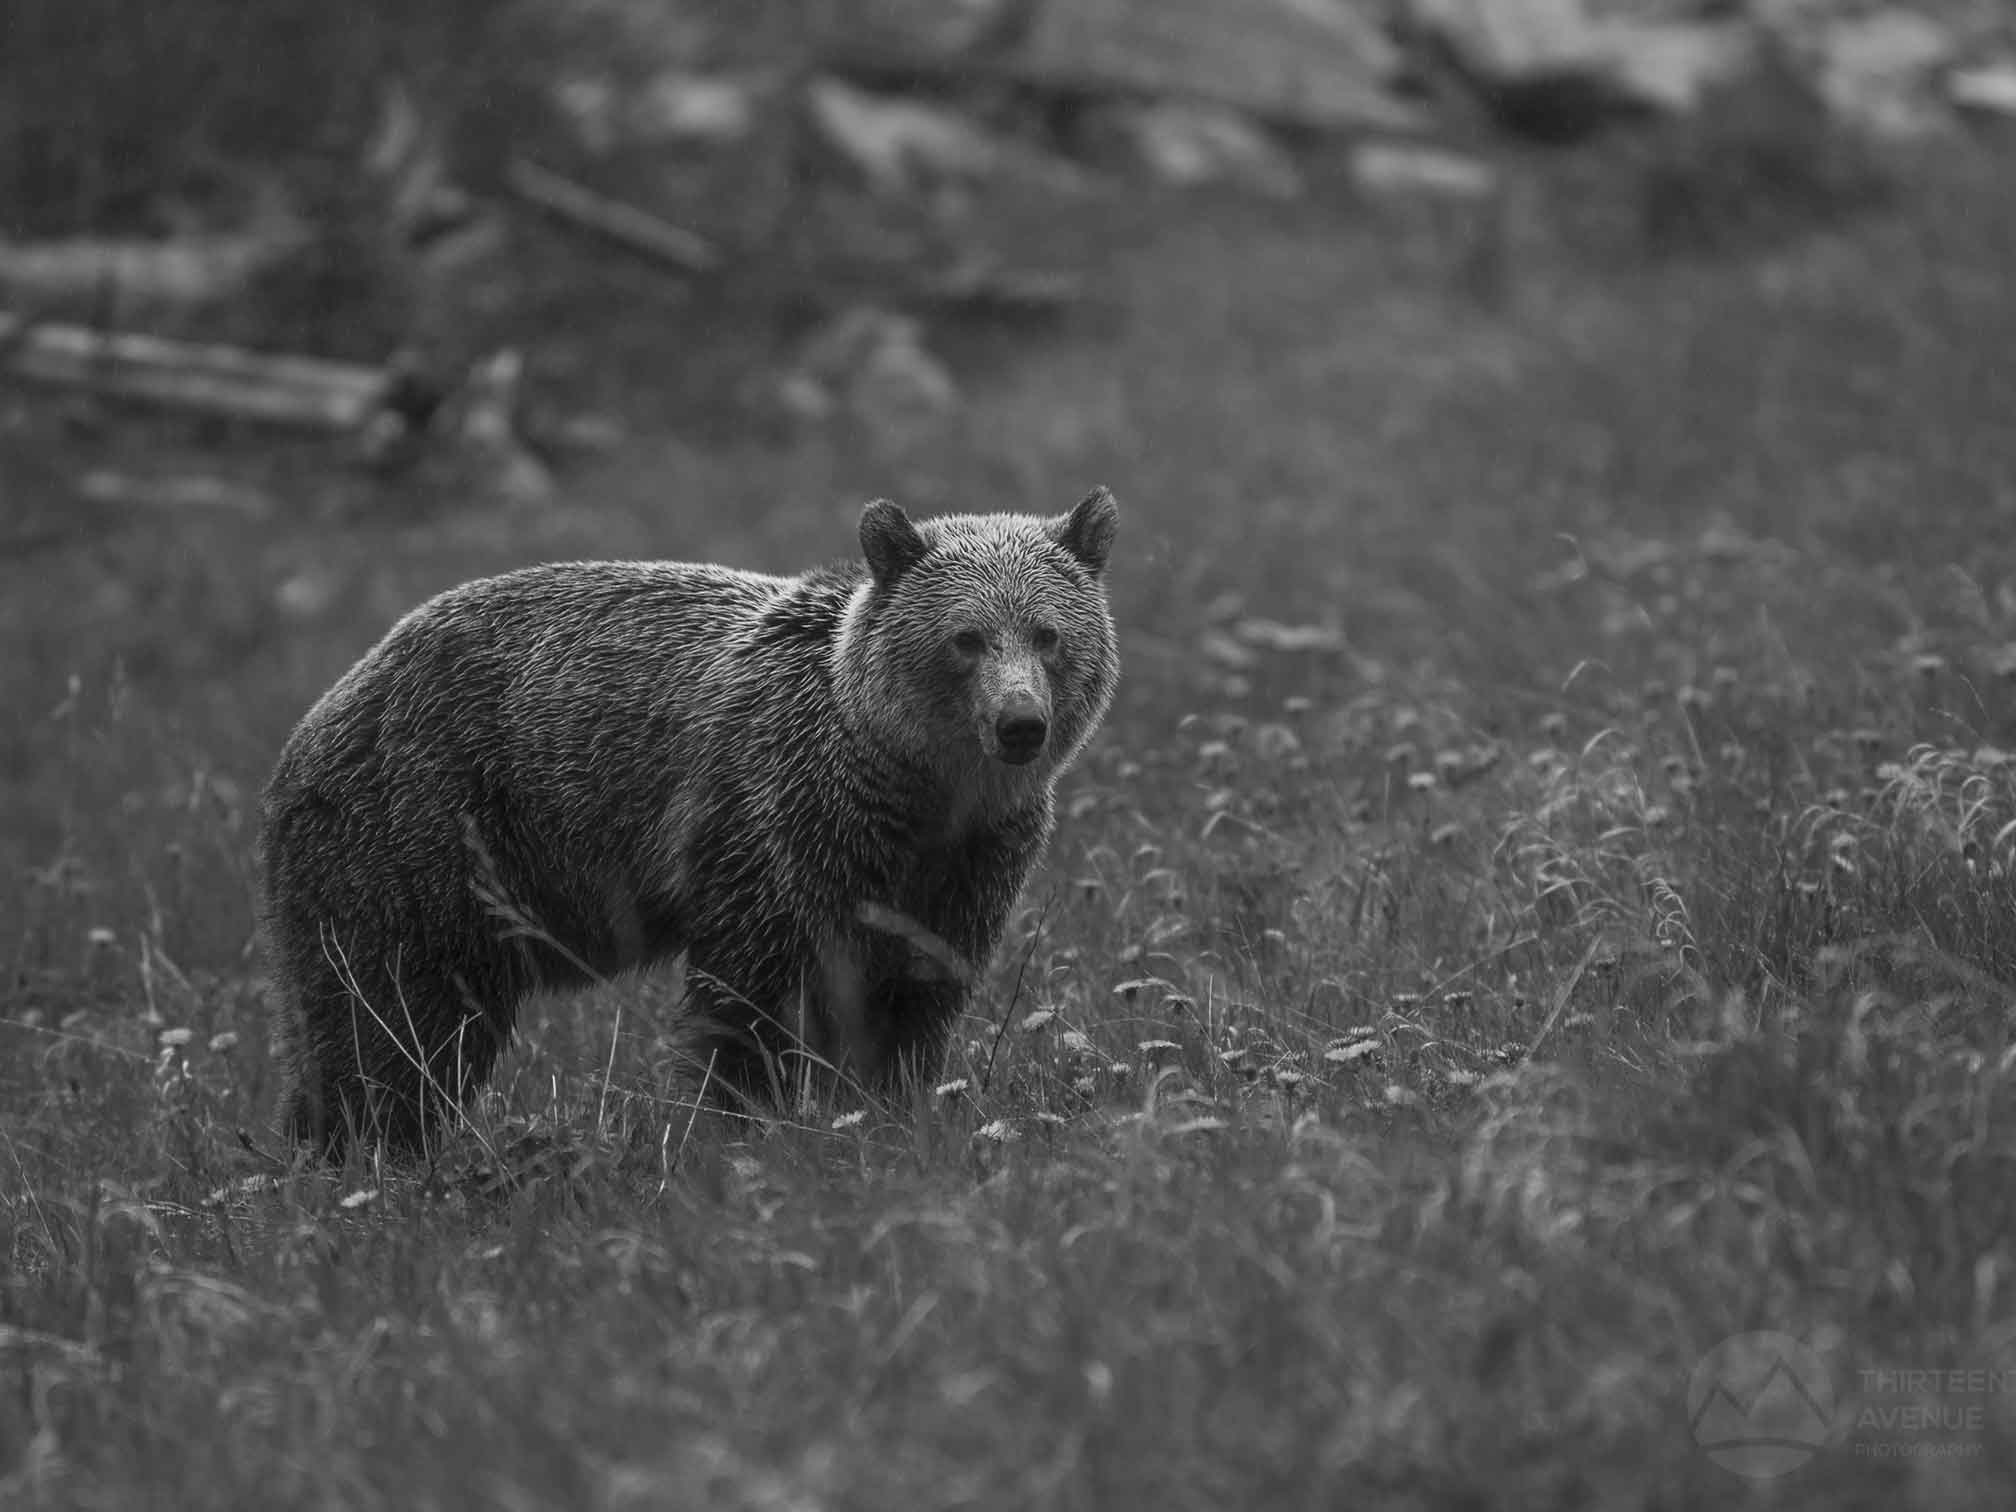 Grizzly Bear in Kananaskis by Thirteenth Avenue Photography